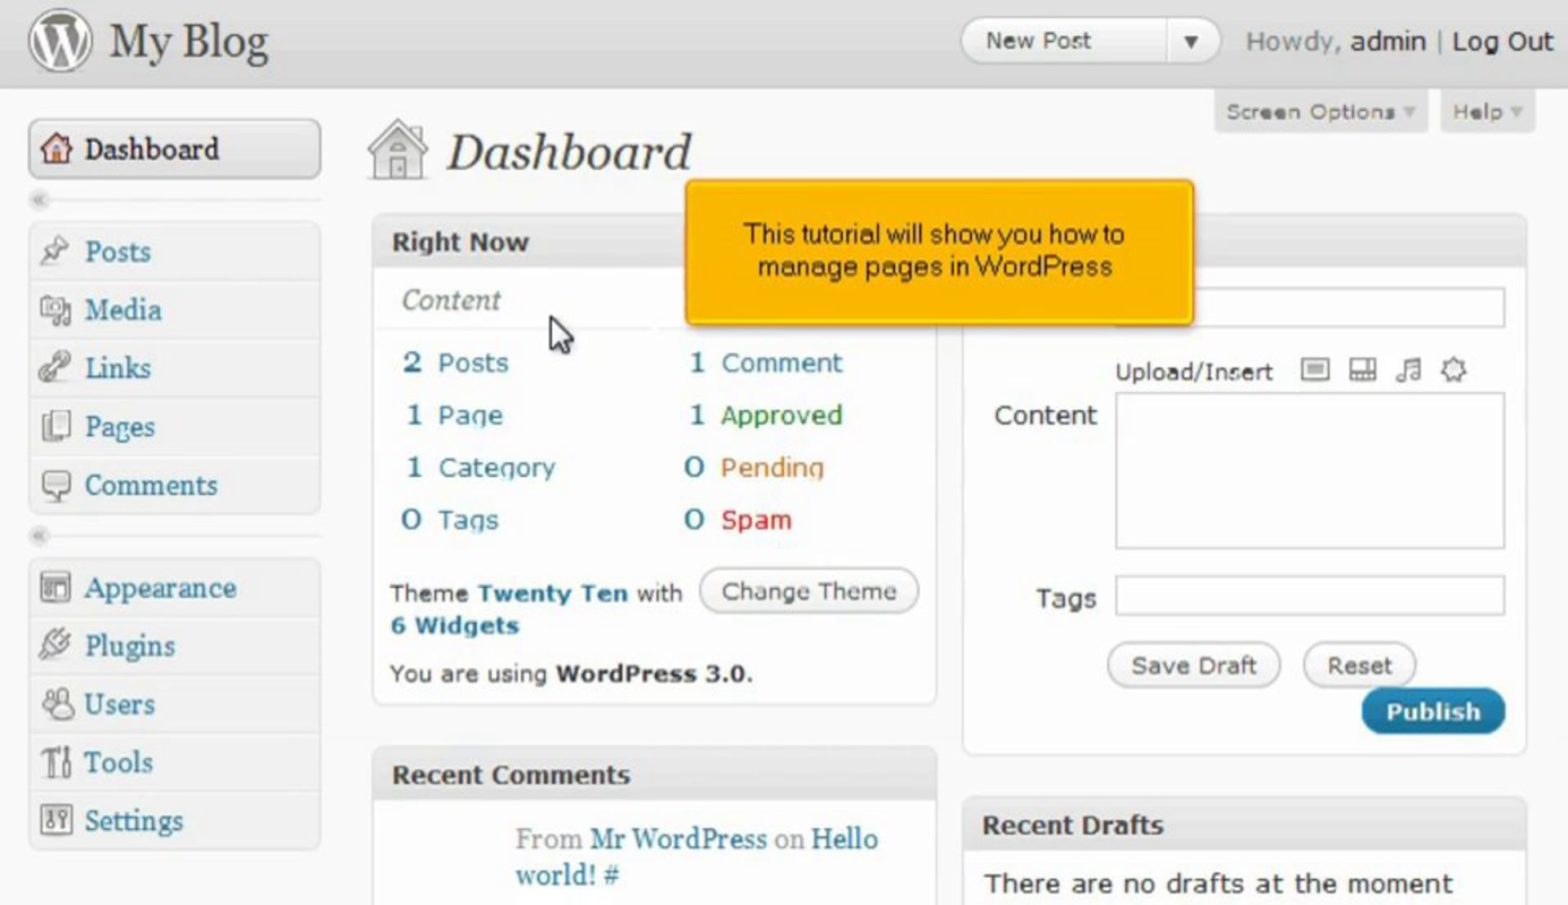 How to manage pages in WordPress